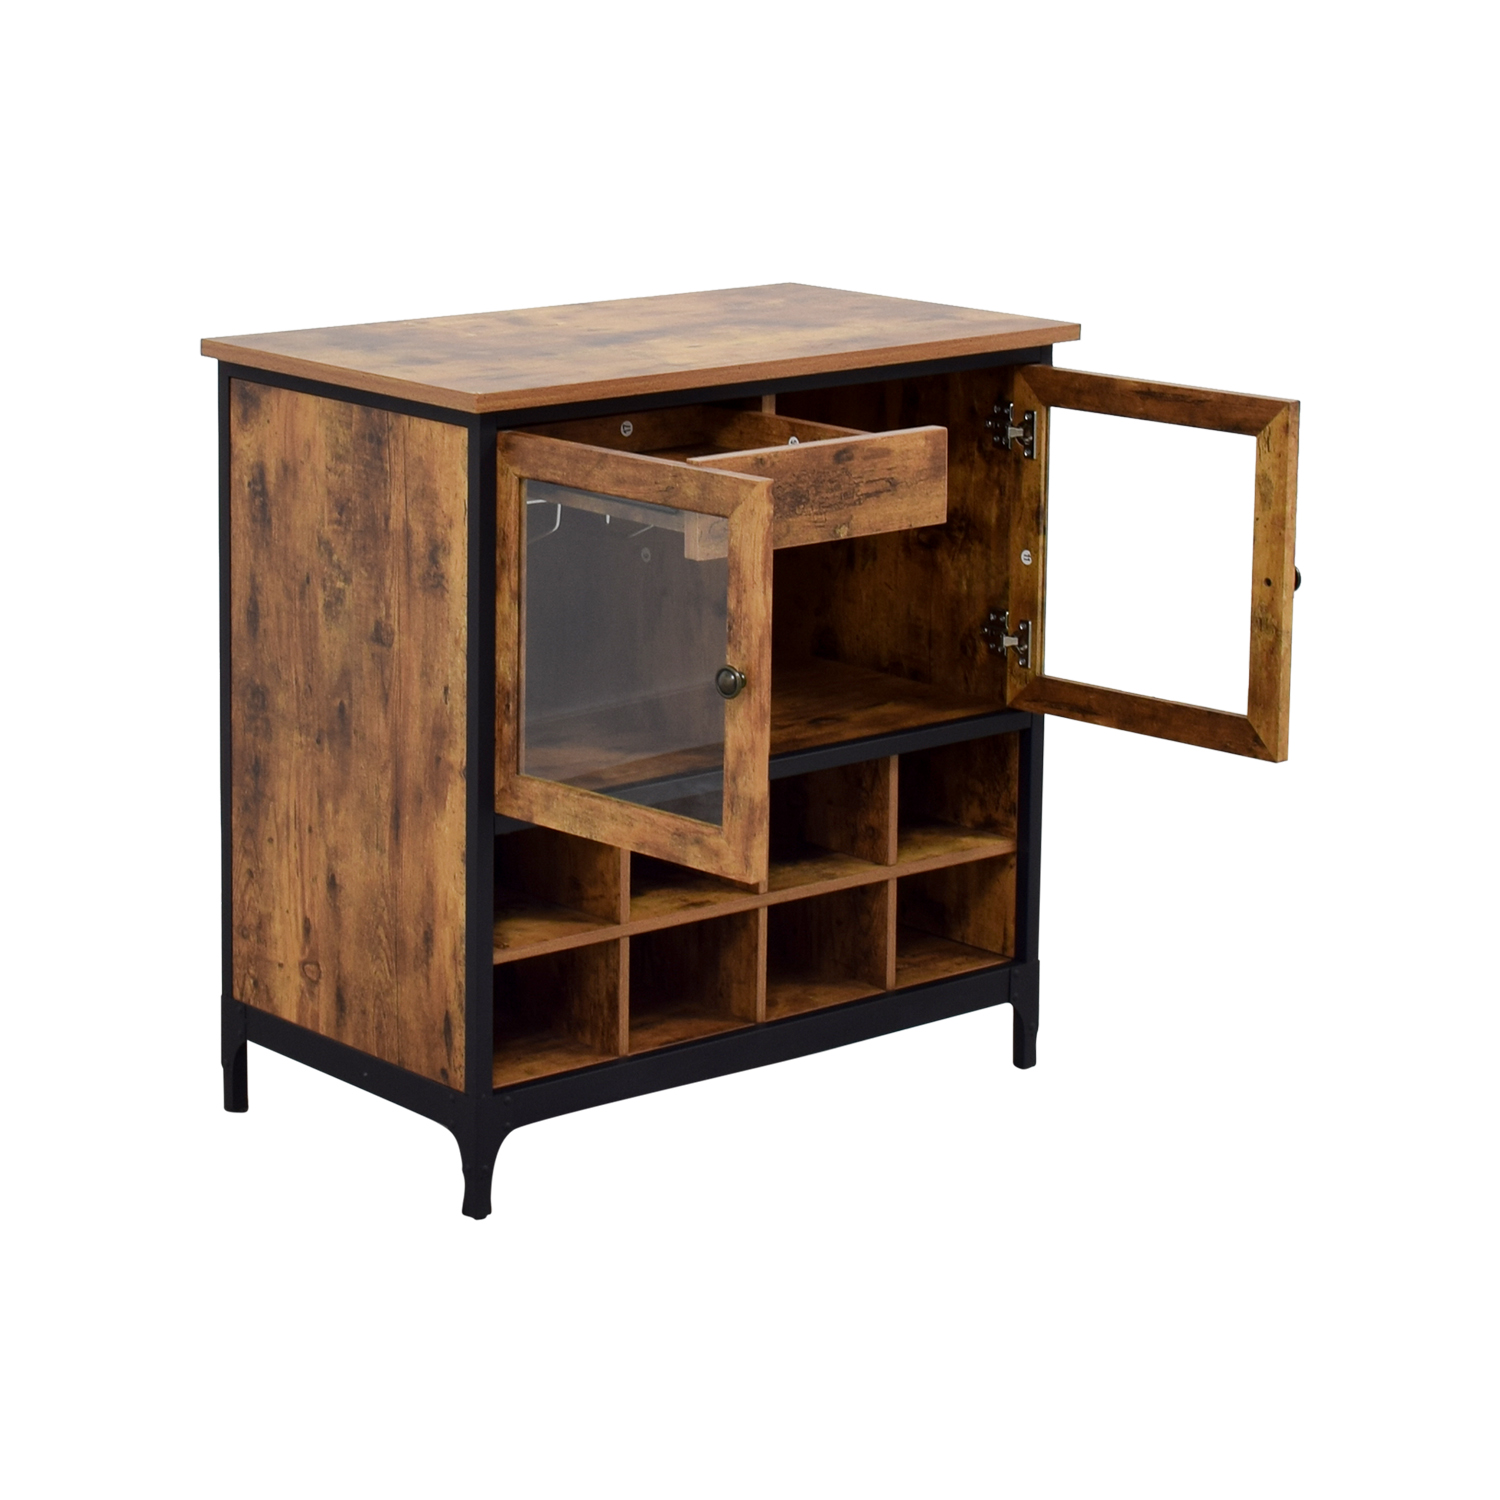 81 off better home and gardens better home and gardens for Rustic home bar furniture